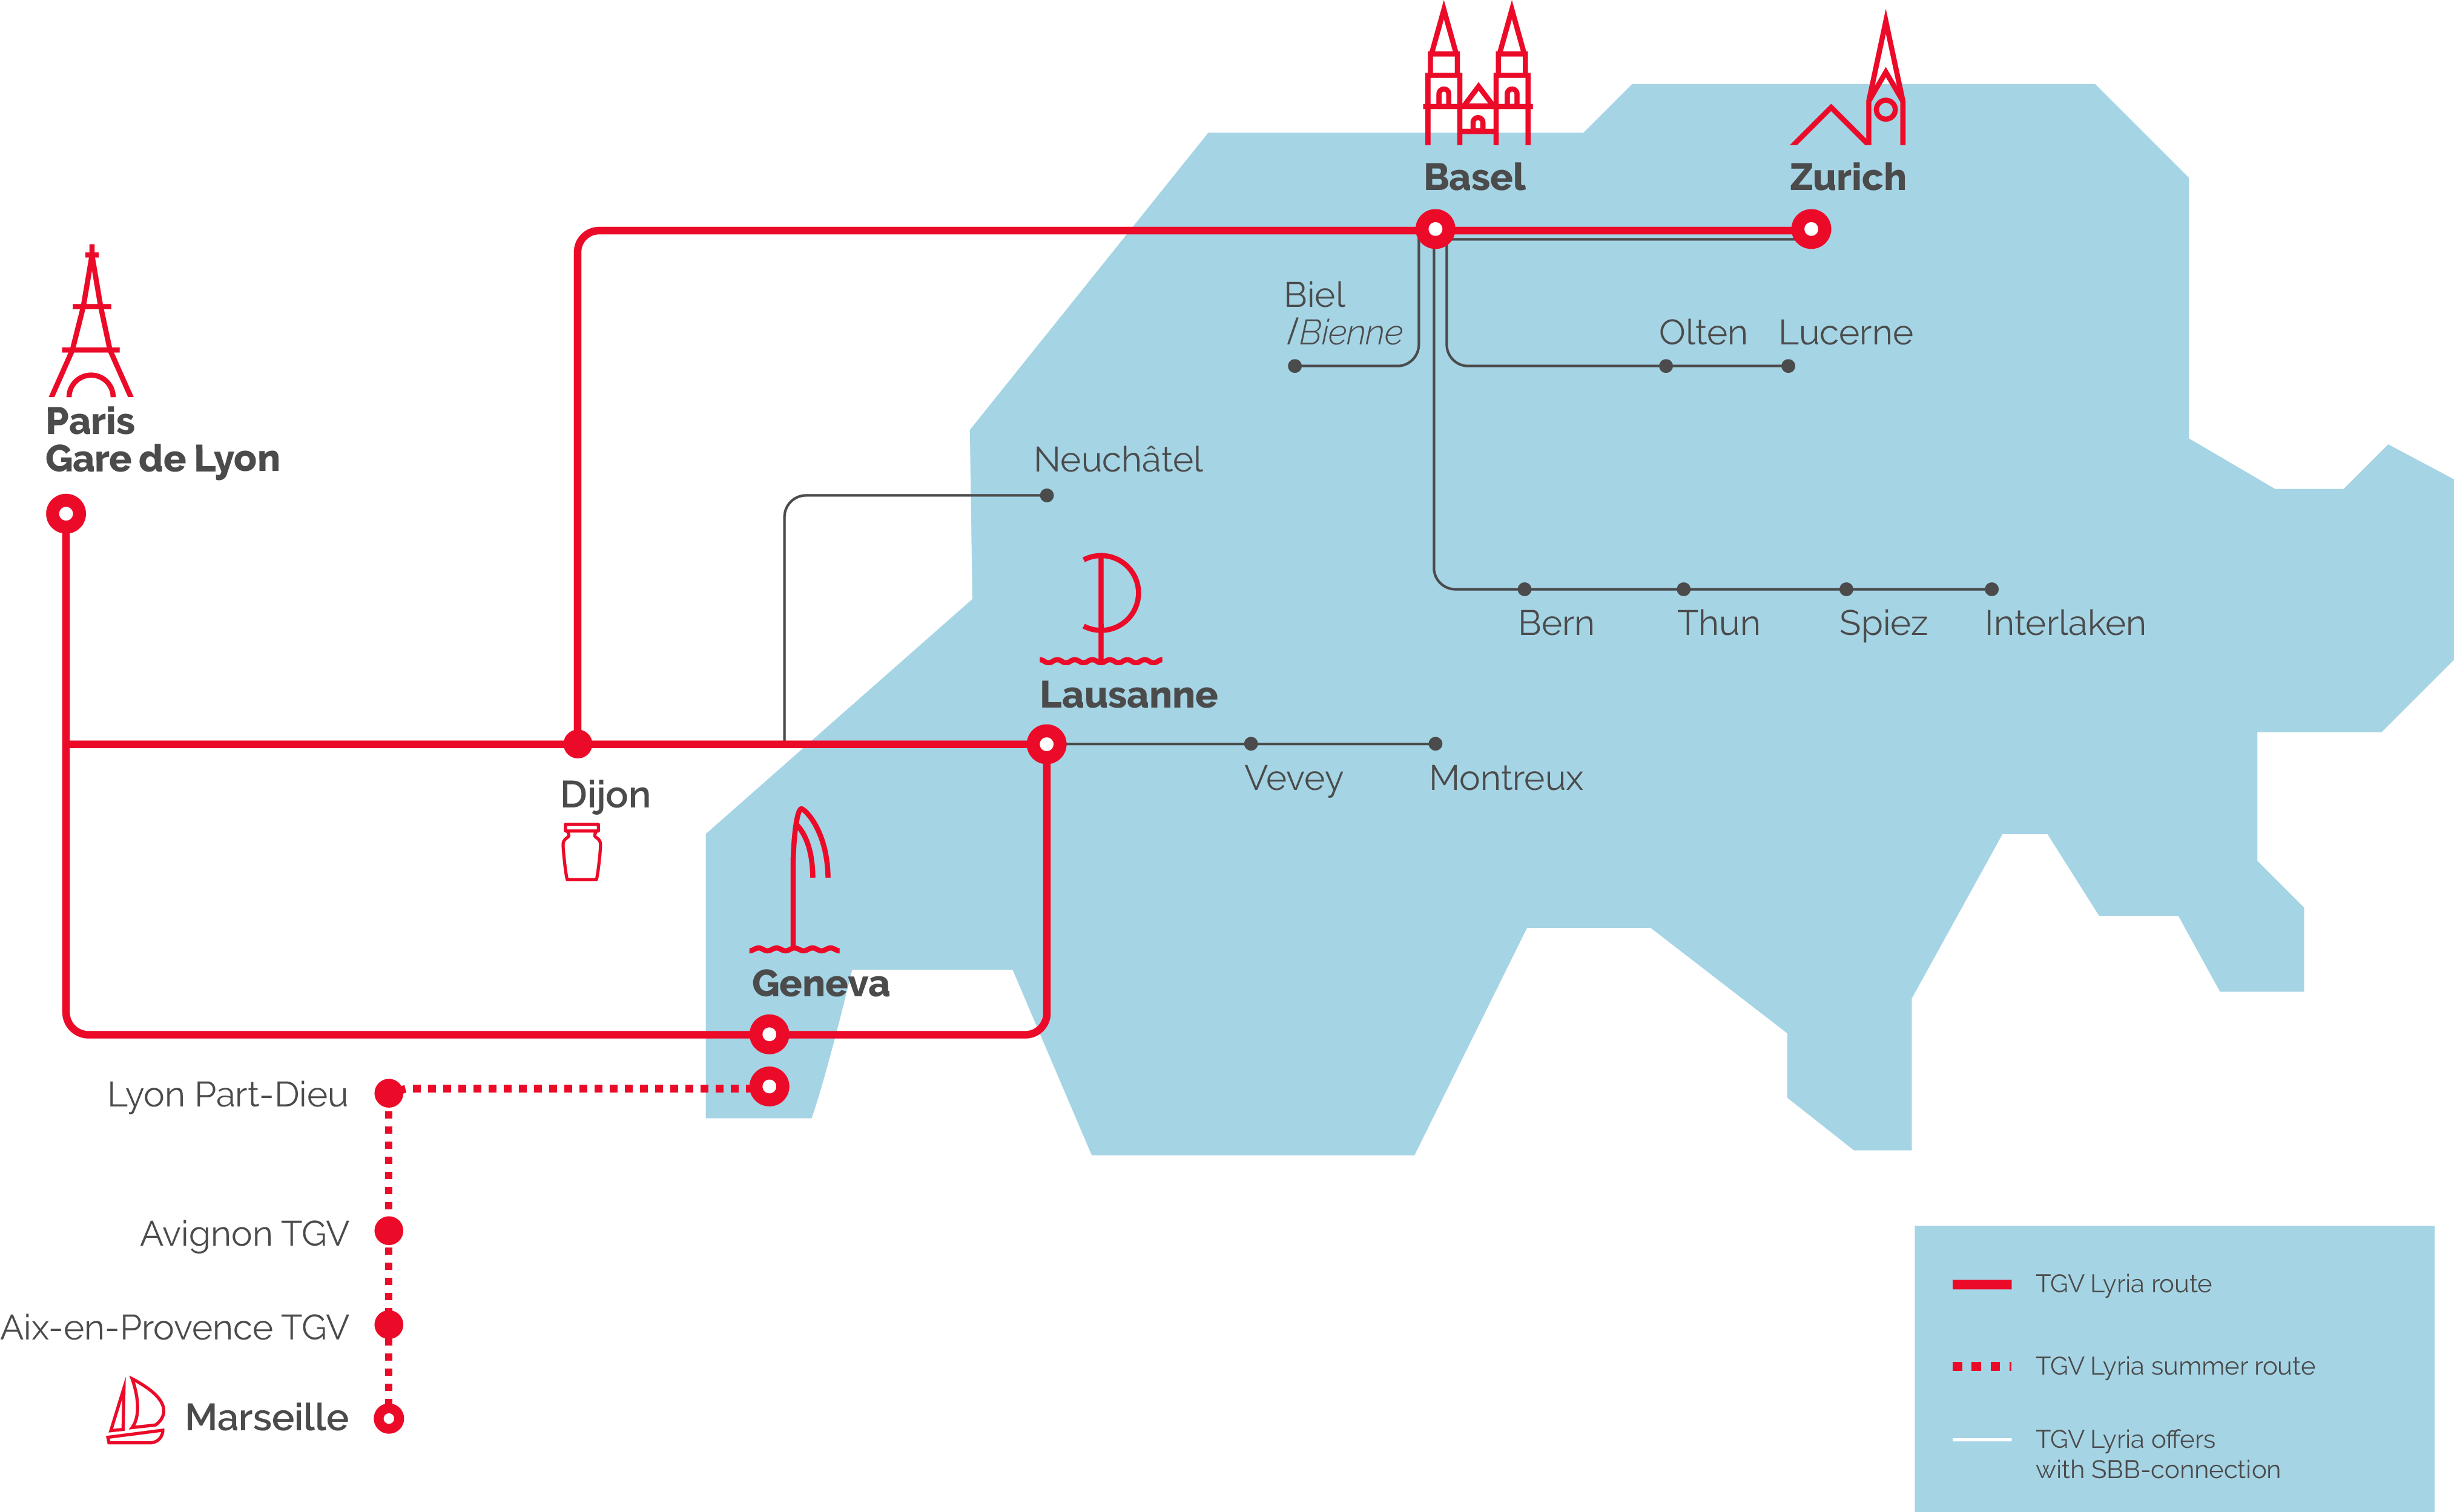 The TGV Lyria network map